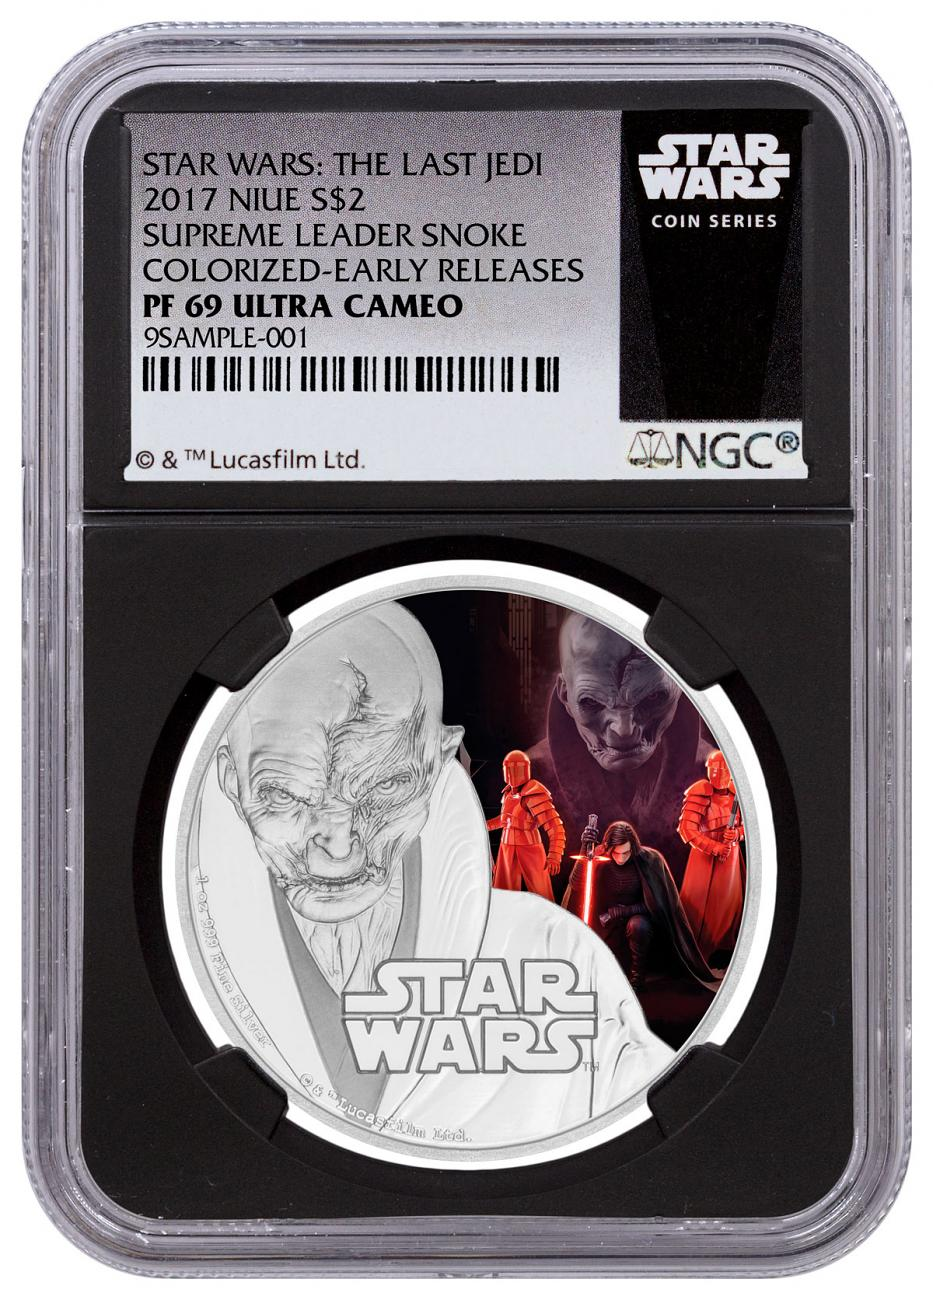 2017 Niue Star Wars: The Last Jedi - Supreme Leader Snoke 1 oz Silver Colorized Proof $2 Coin NGC PF69 UC ER Black Core Holder Exclusive Star Wars Label